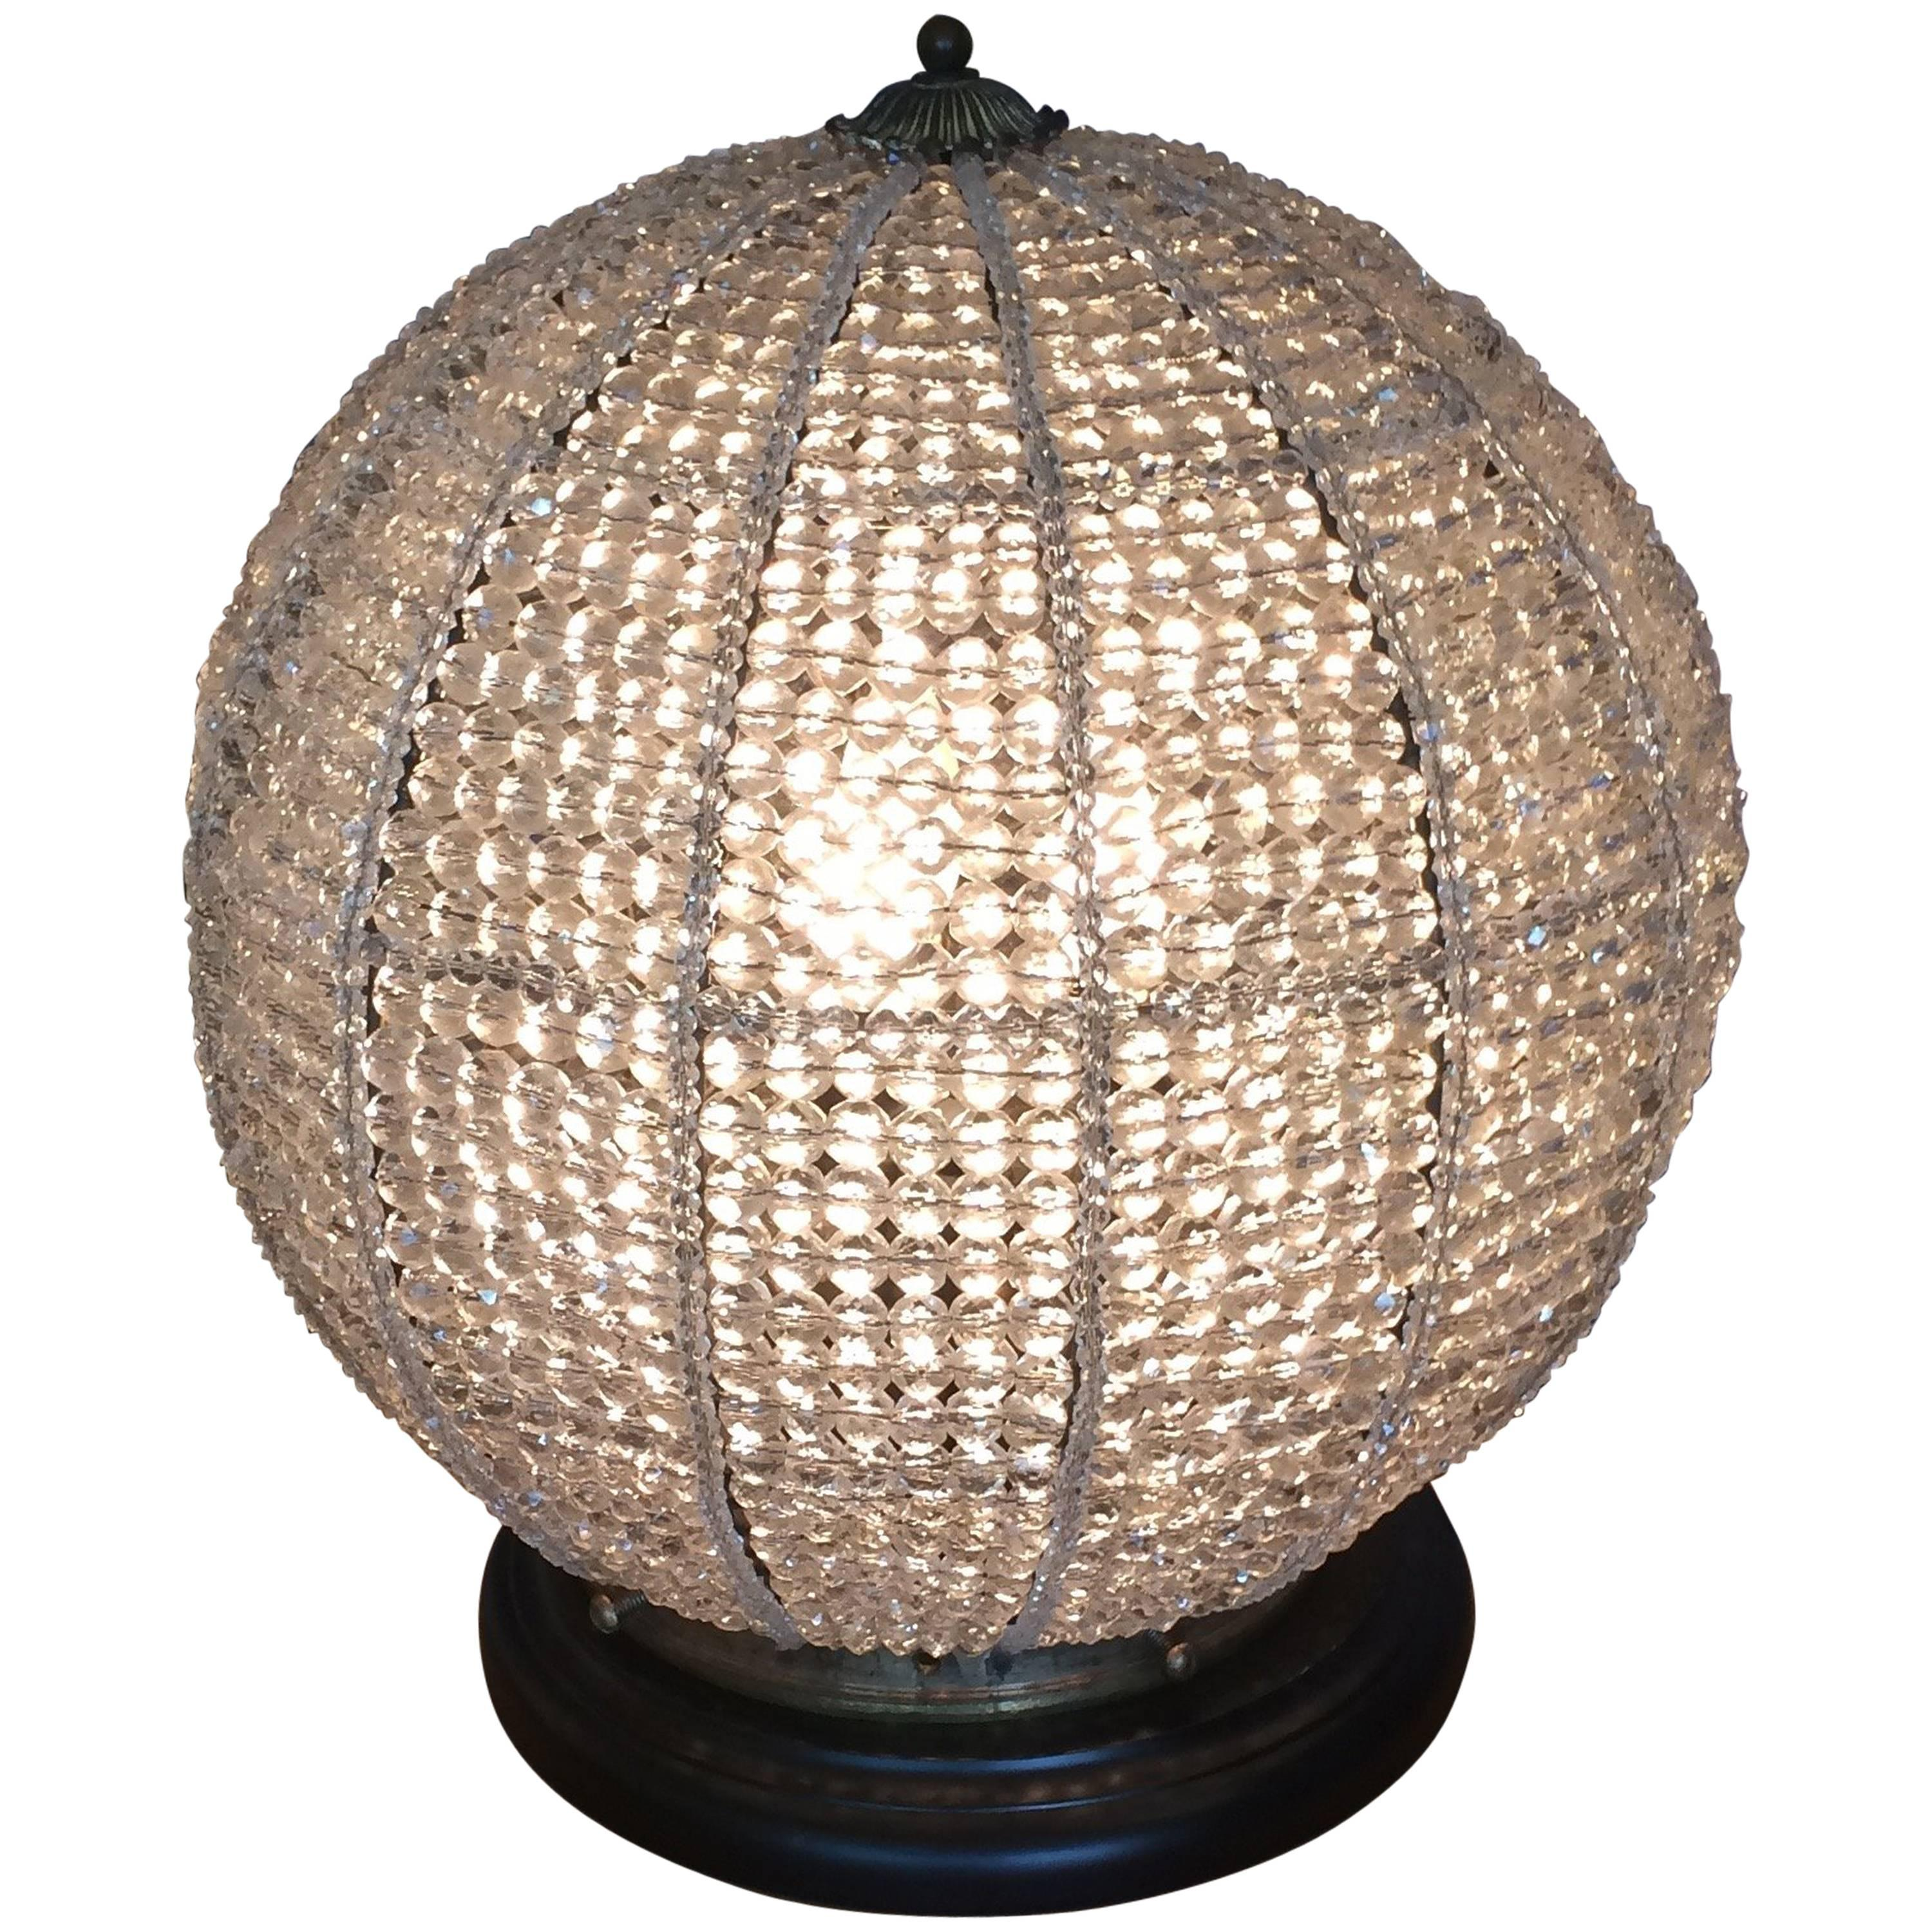 Sensational Beaded Orb Table Lamp For Sale At 1stdibs